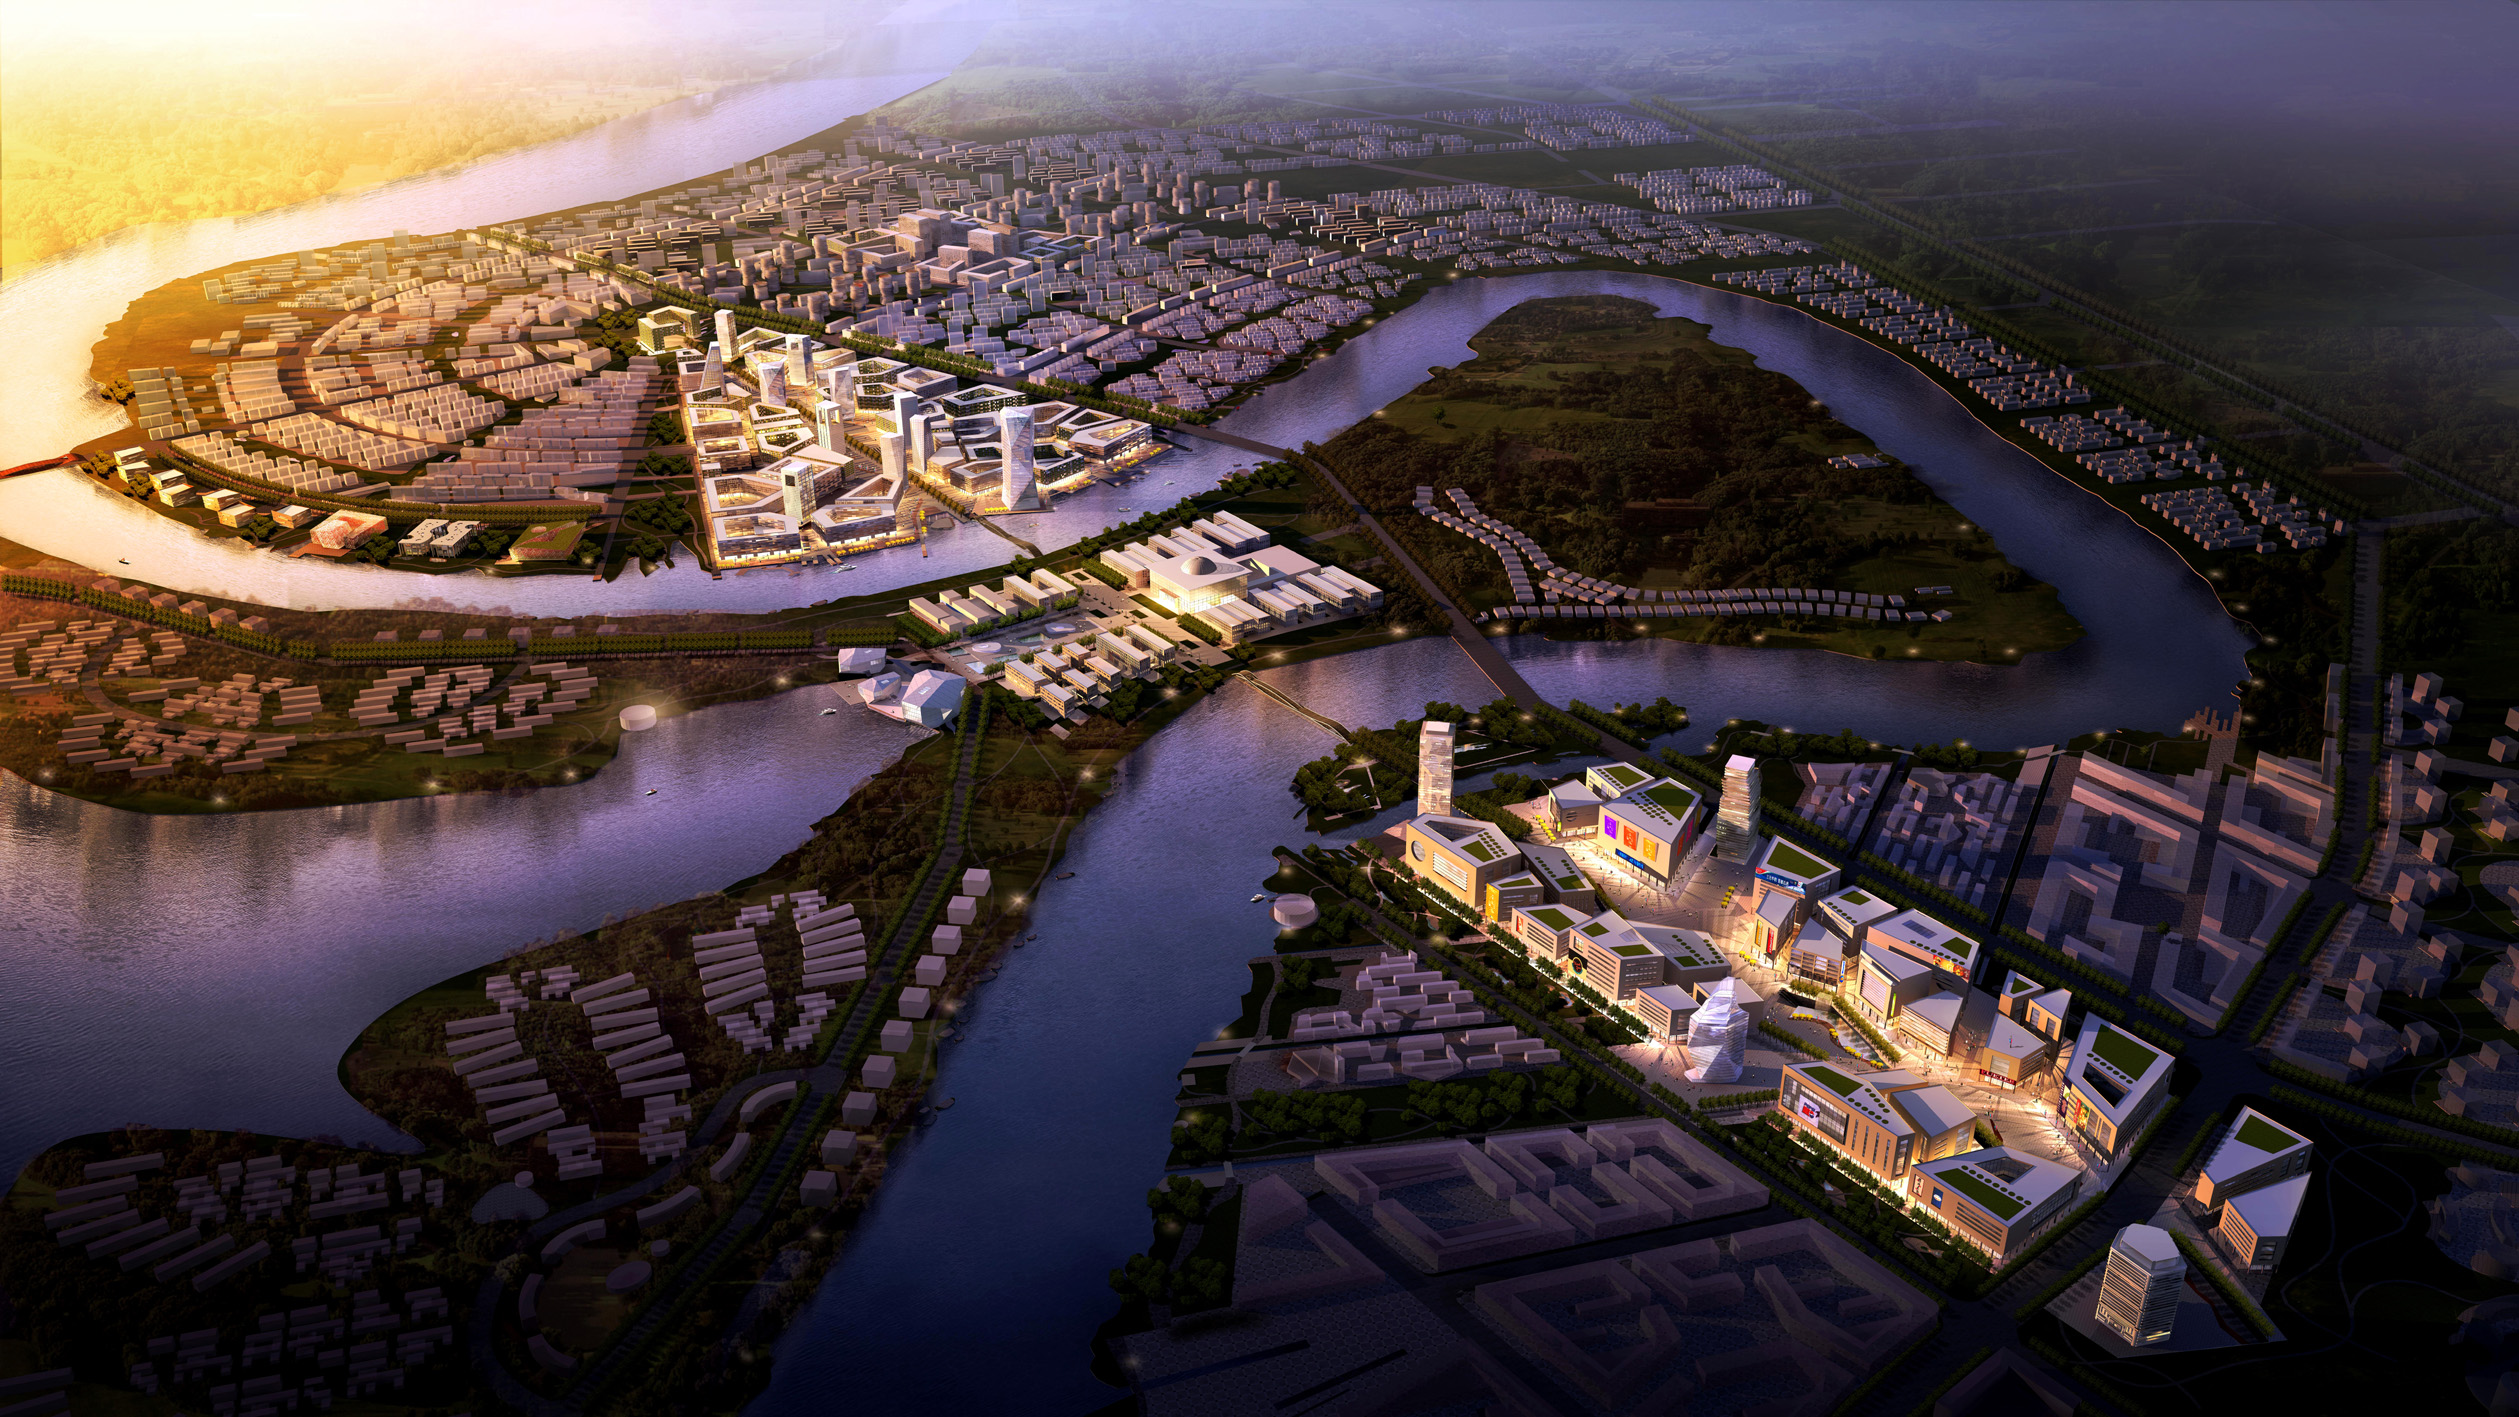 Tianjin Eco City